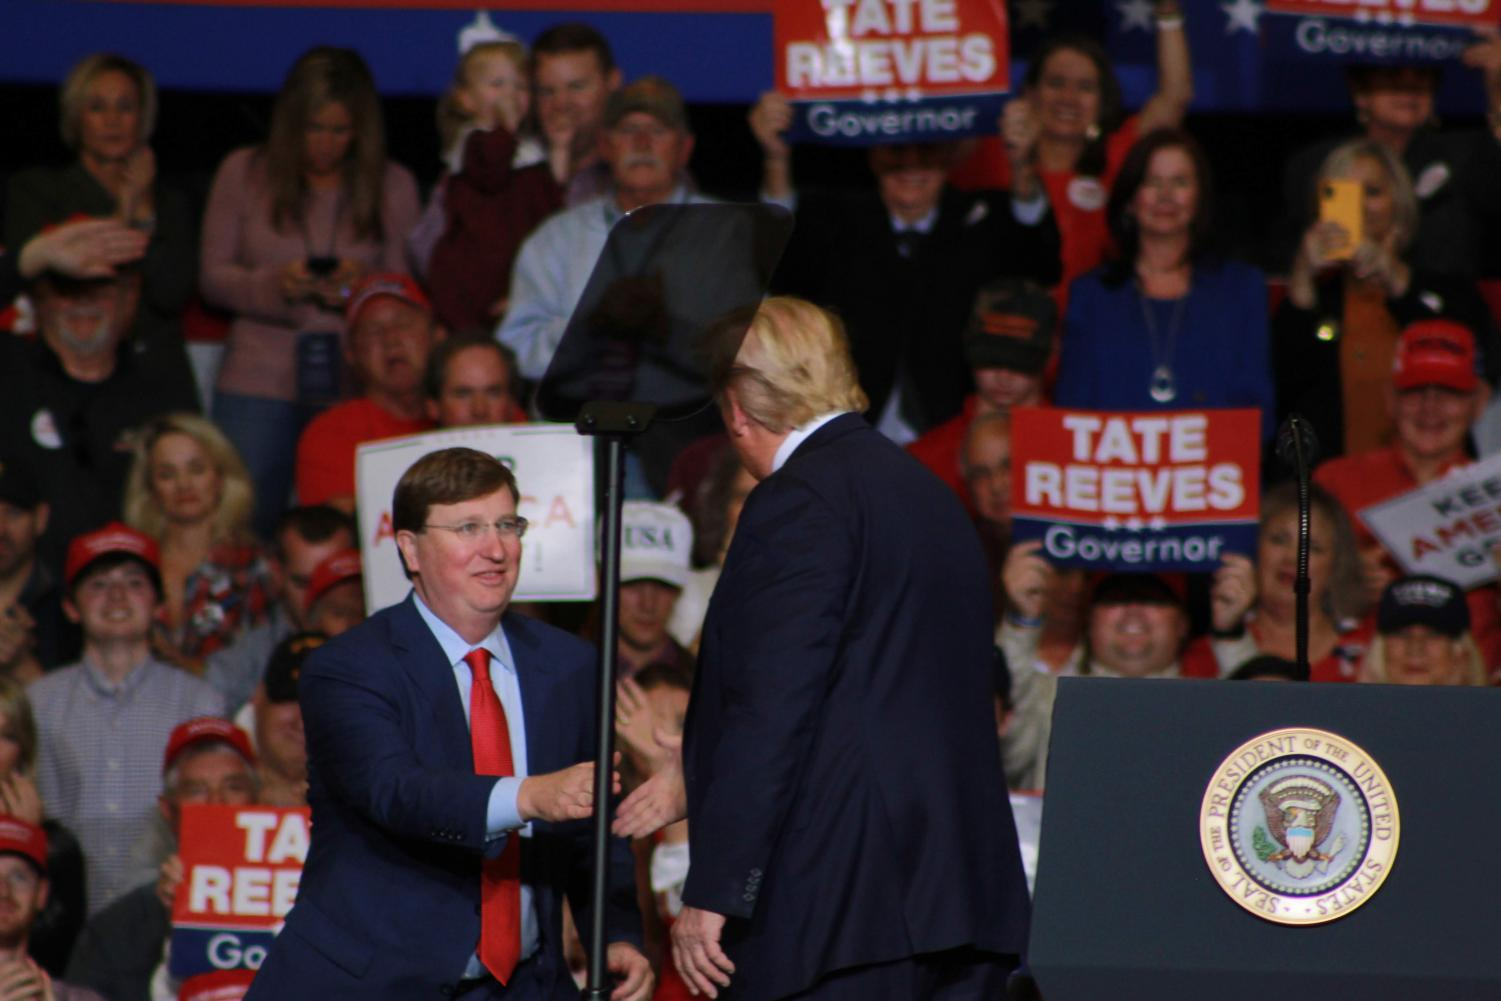 President Donald Trump welcomes the new Mississippi State Governor, Tate Reeves, to the stage to share a few words.